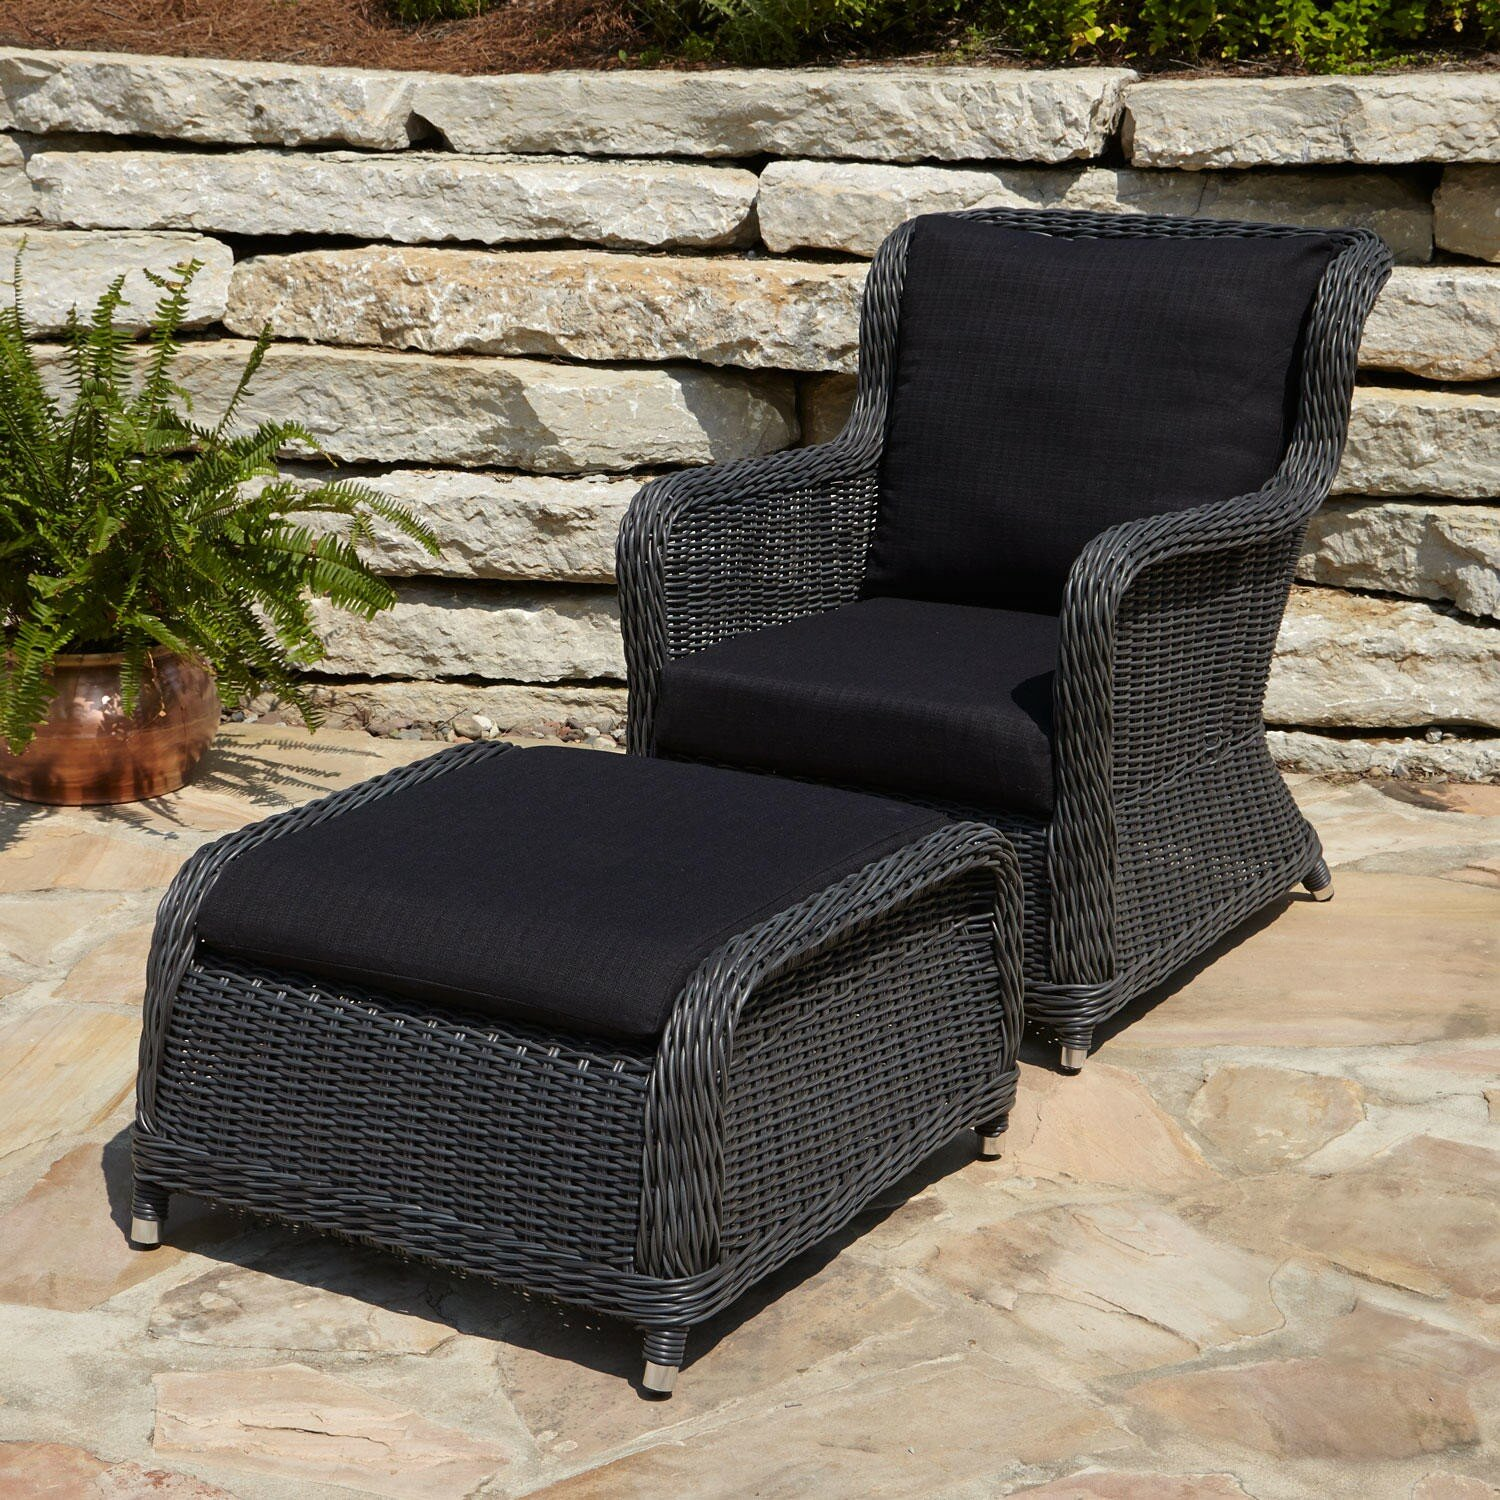 Furniture Lowes Patio Furniture Clearance Sale